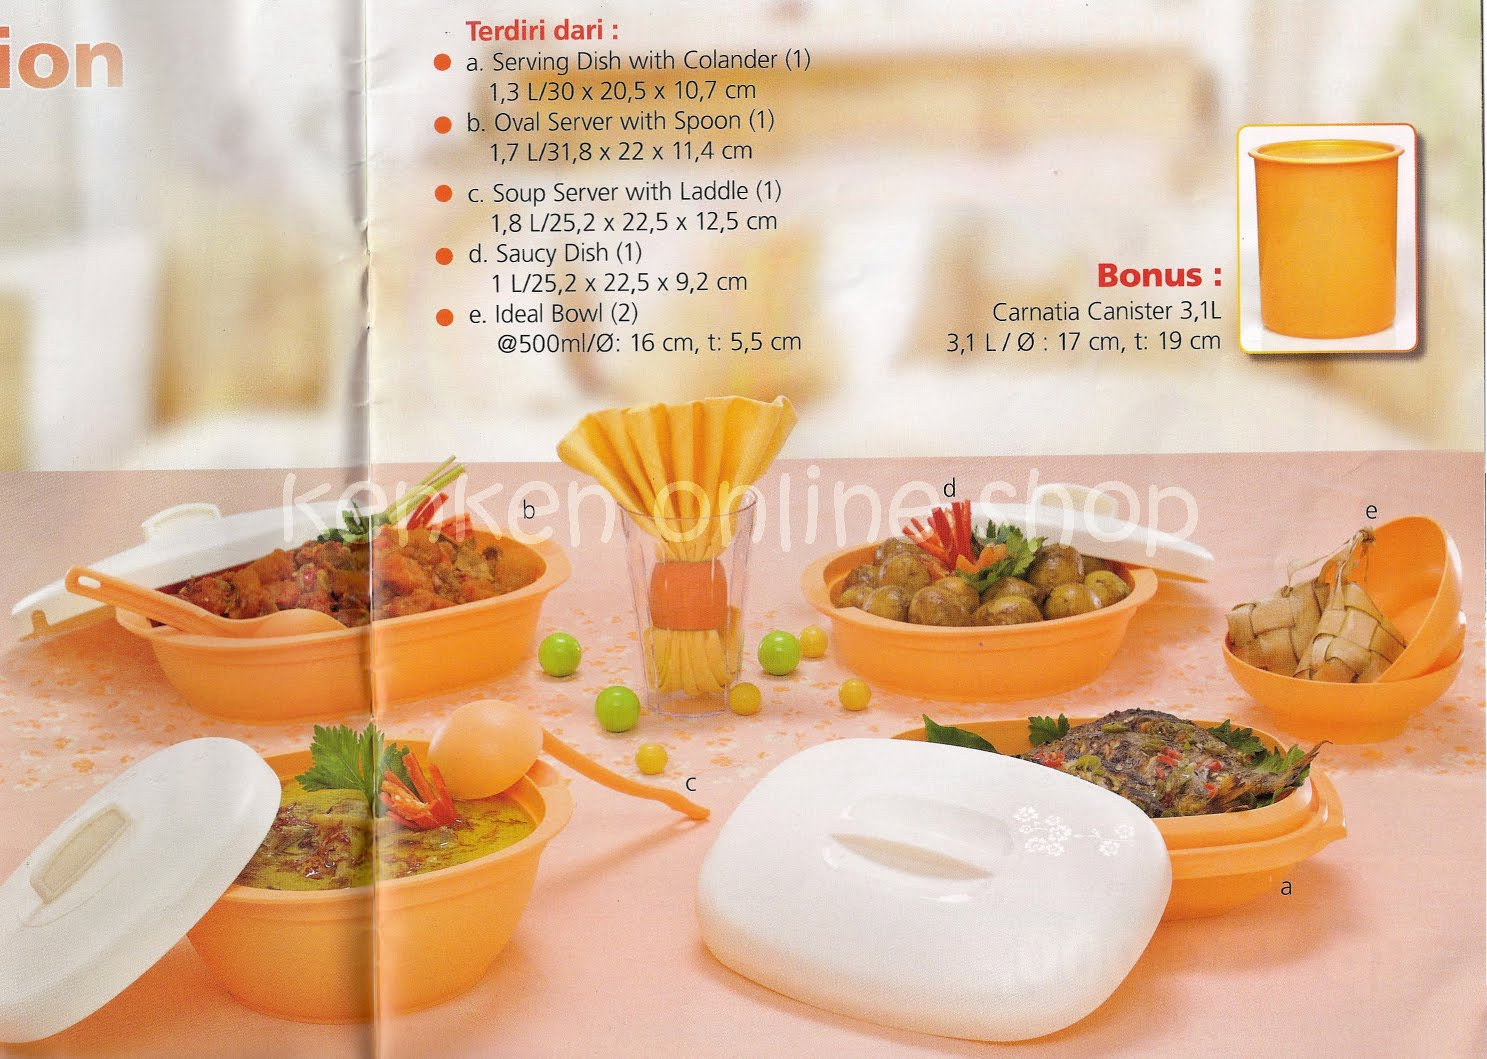 Tupperware Promo Sale Tupperware Tupperware Indonesia Tupperware Promo jual tupperware Tupperware Indonesia Promo Juli 2010 1487x1059